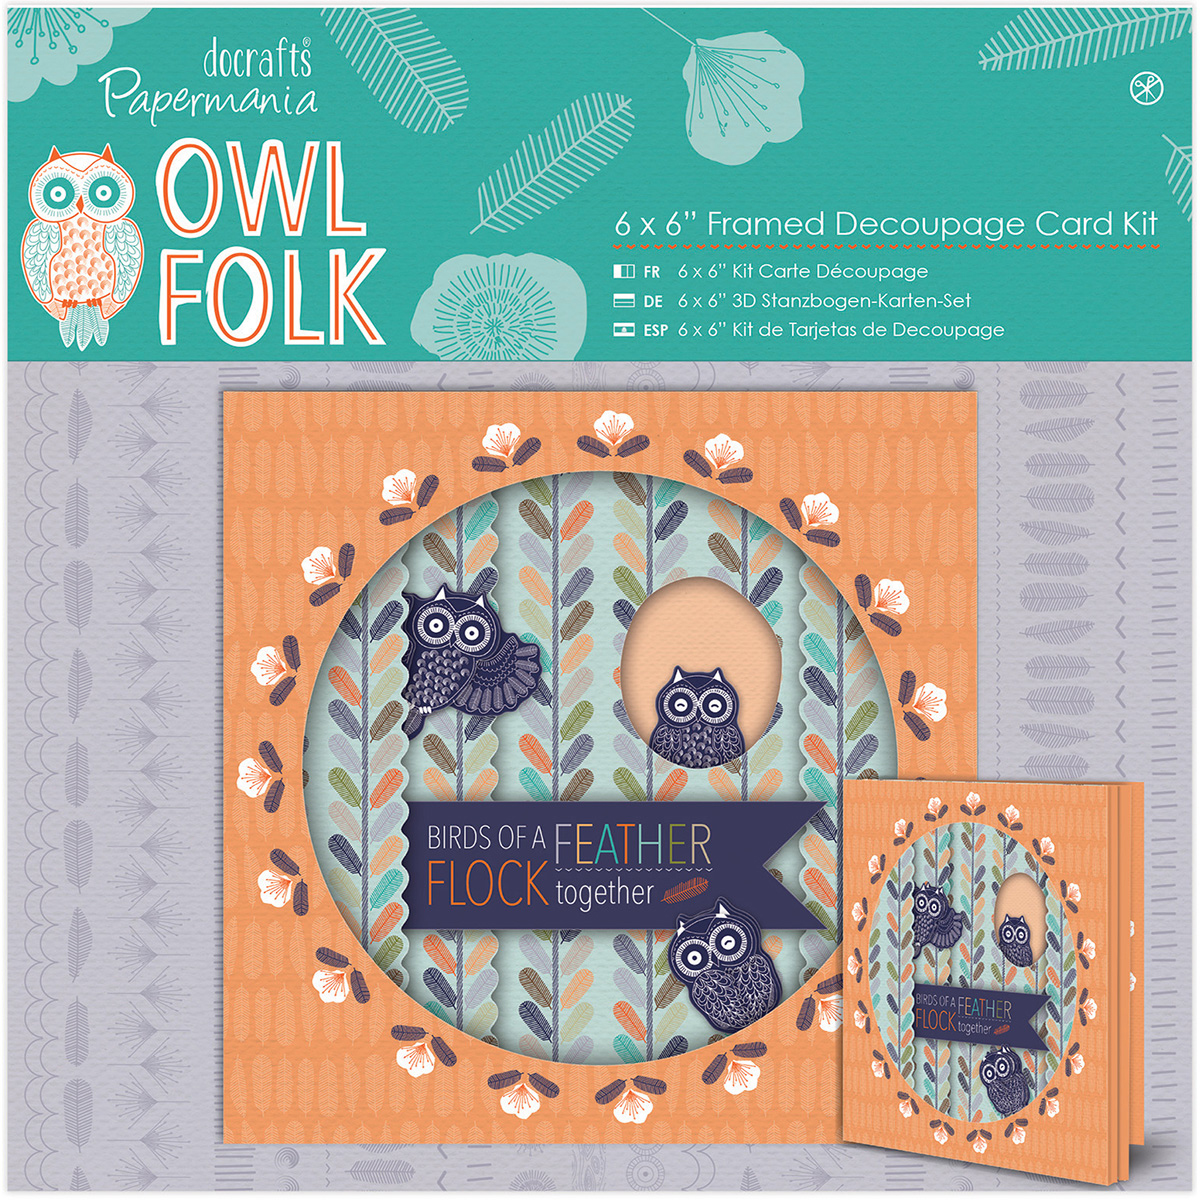 FRAMED DECO-OWL FOLK CARD KIT6X6